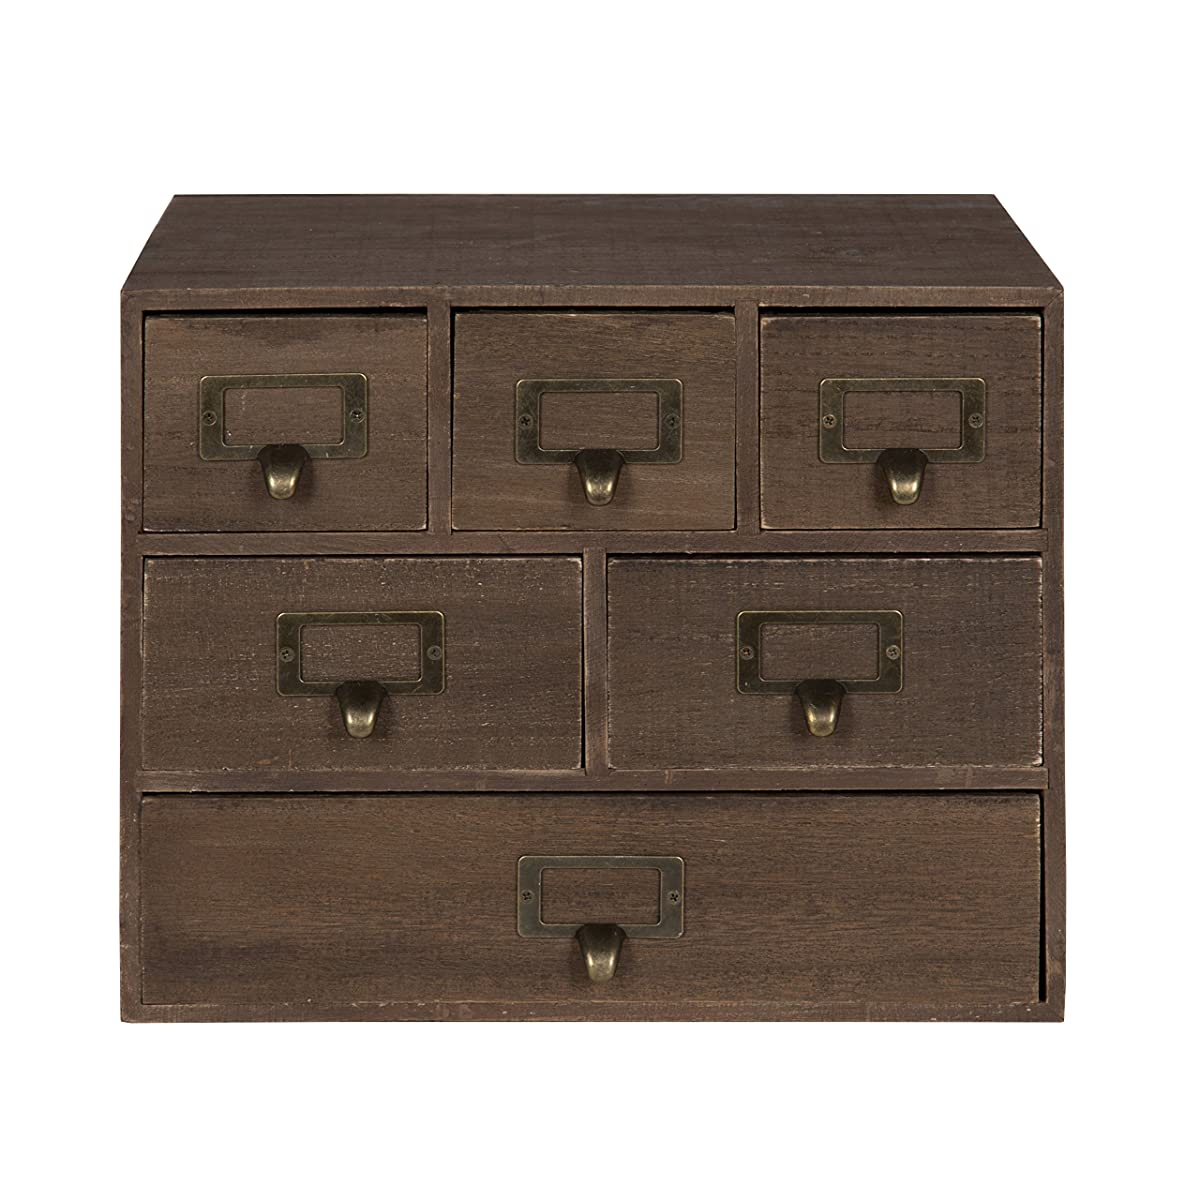 Kate and Laurel Apothecary Wood Desk Drawer Set with Letter Holder, 6 Drawers, Rustic Brown